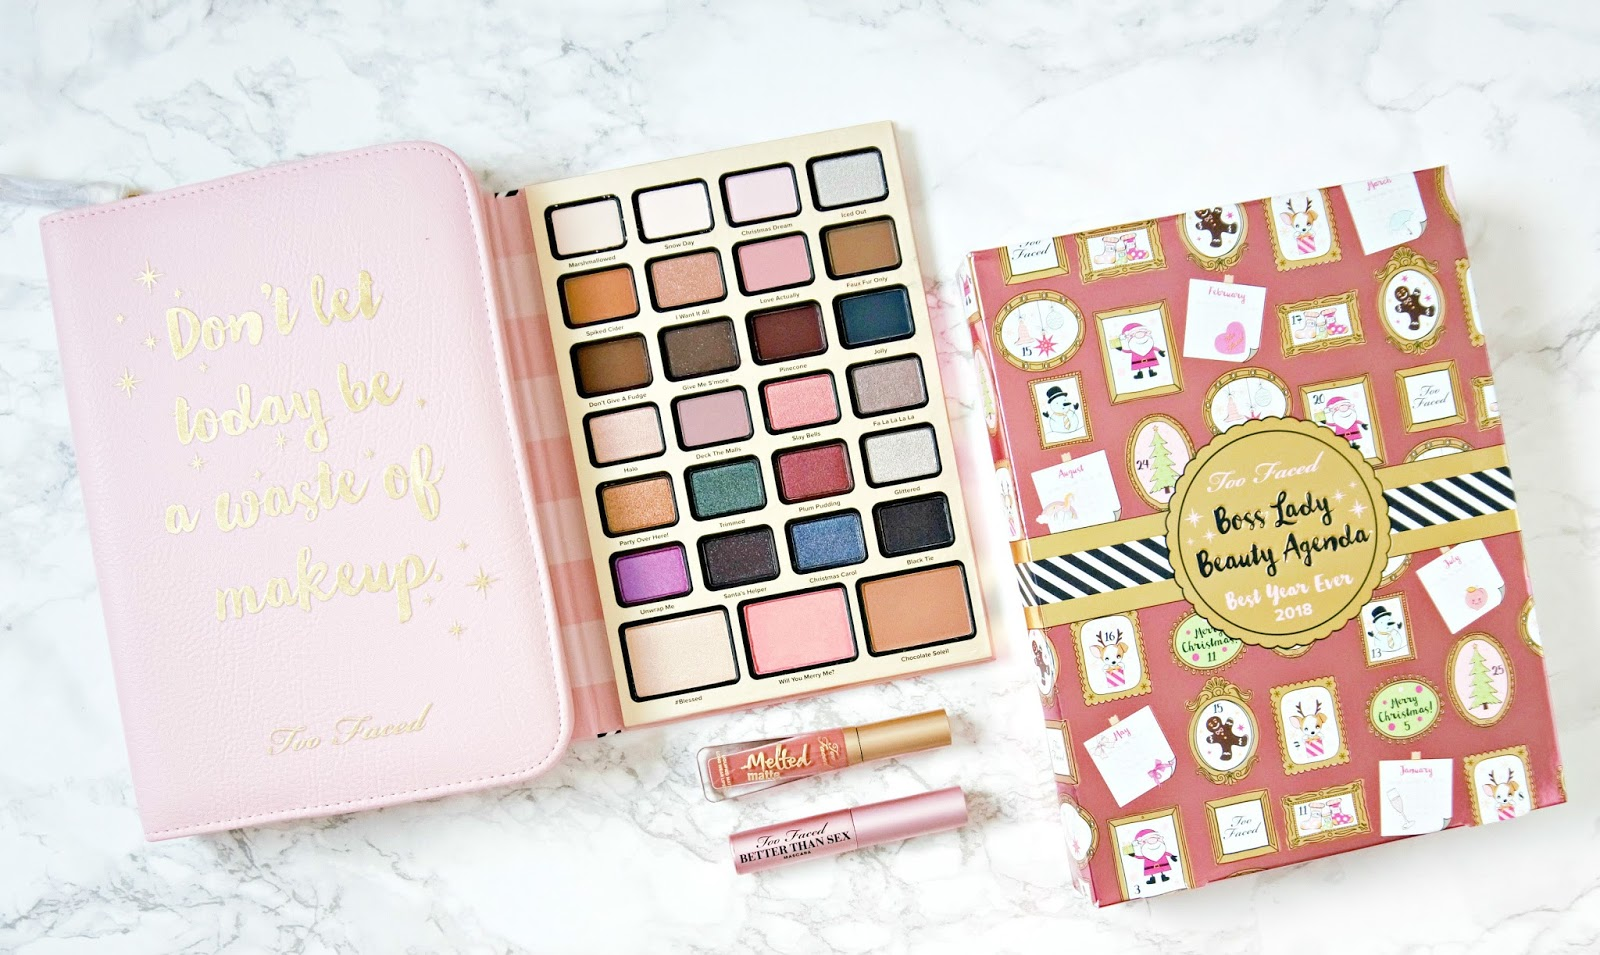 Too Faced Boss Lady Beauty Agenda Review